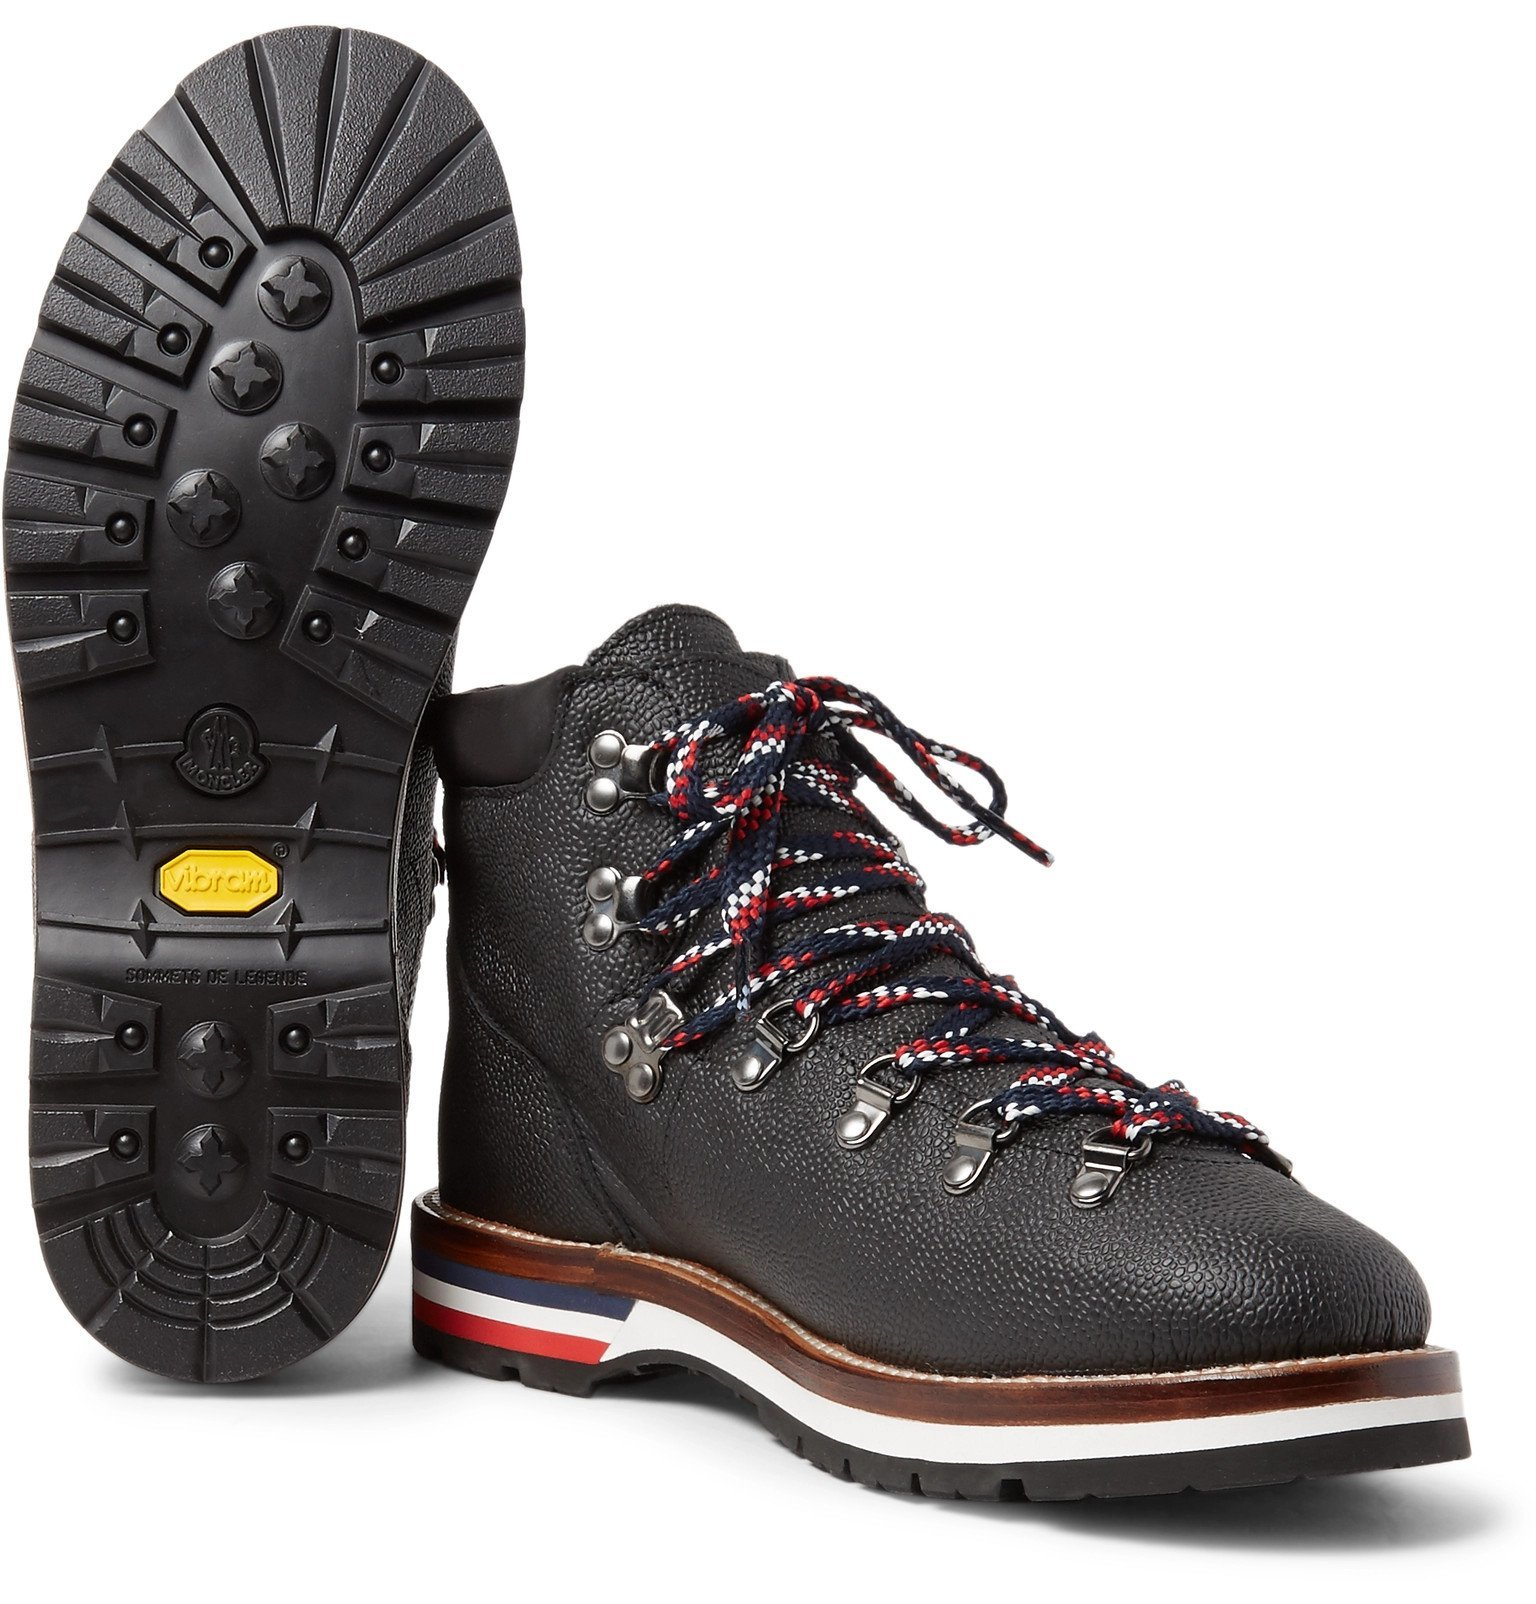 Moncler - Peak Pebble-Grain Leather Hiking Boots - Black